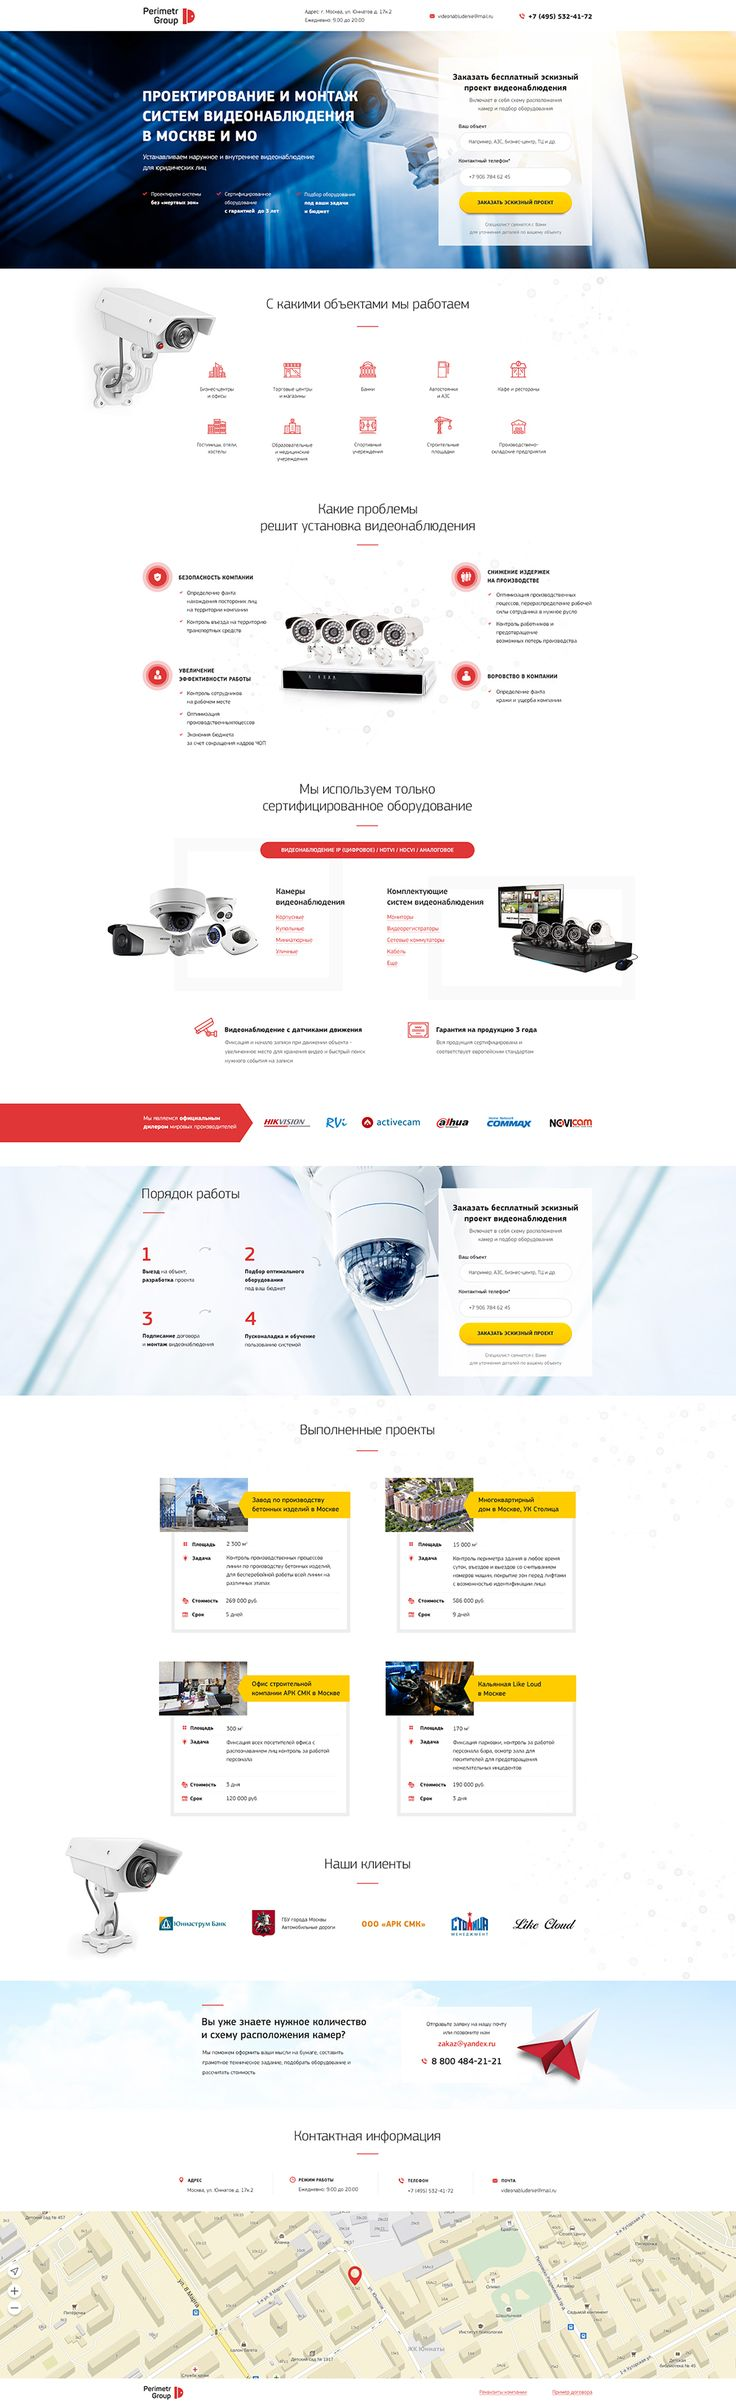 Landing page for CCTV